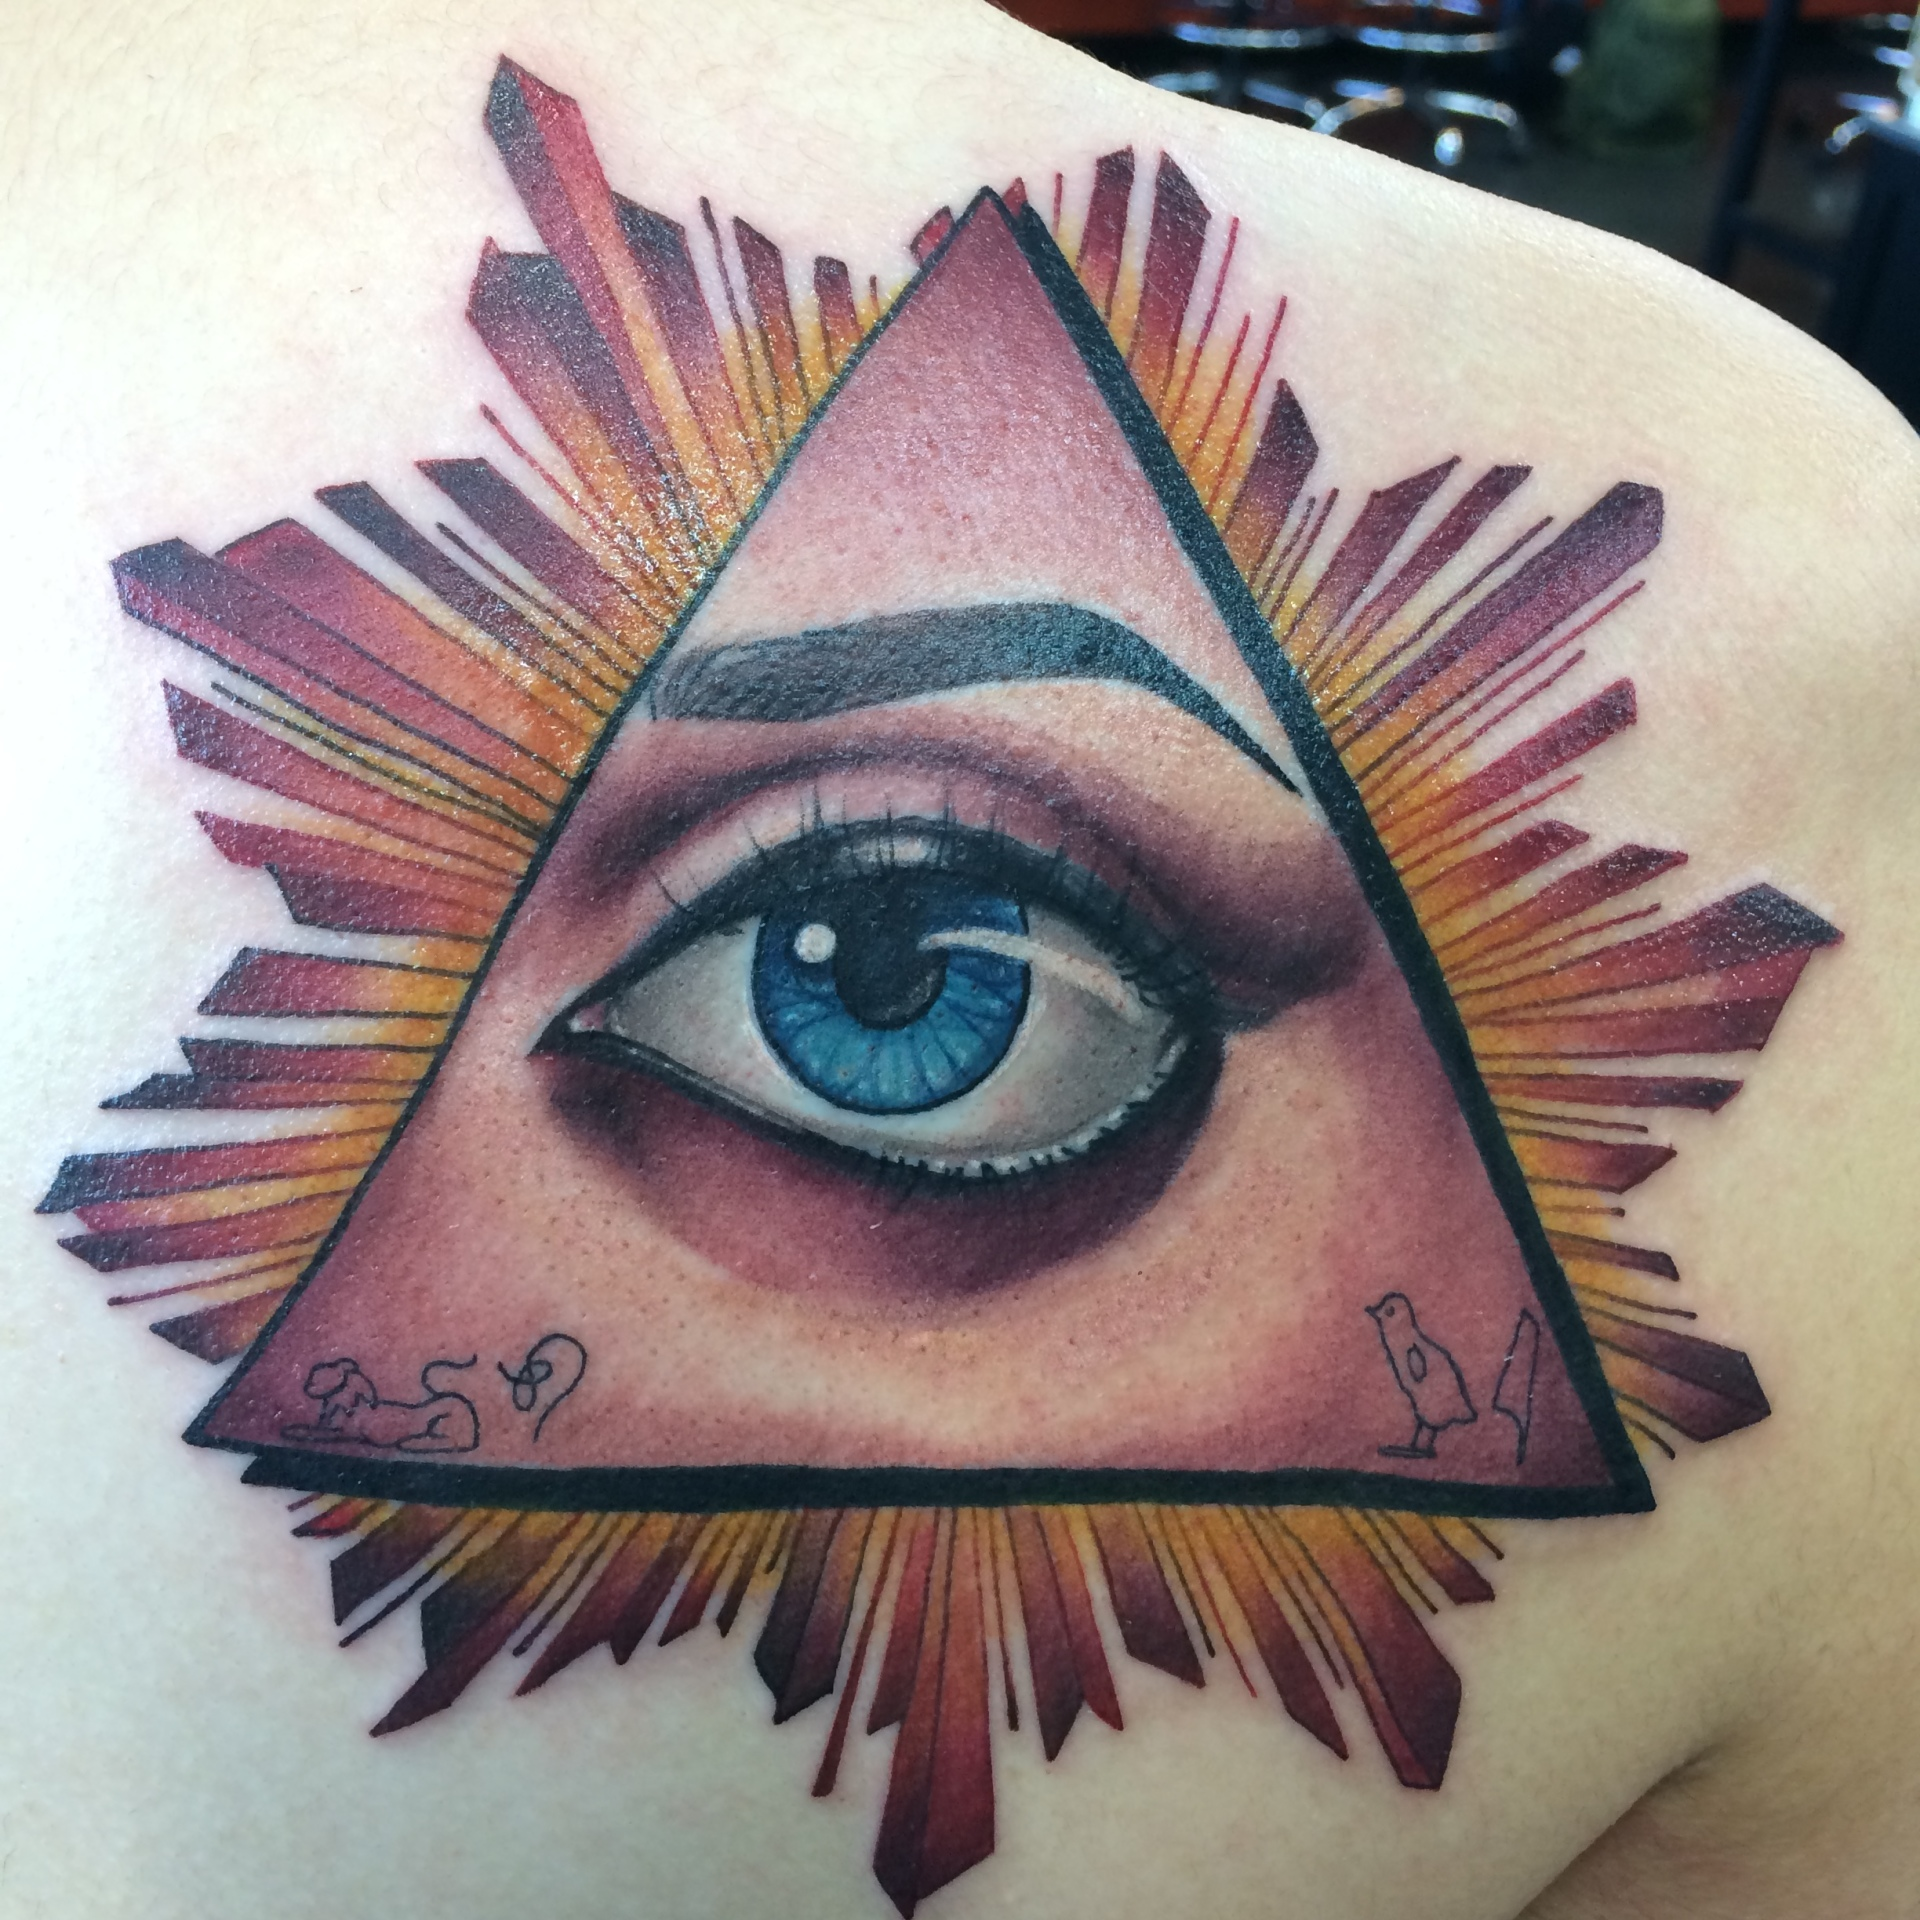 illuminati, allseeingeye, tattoo, eye tattoo, pyramid, color tattoo, art, nakota